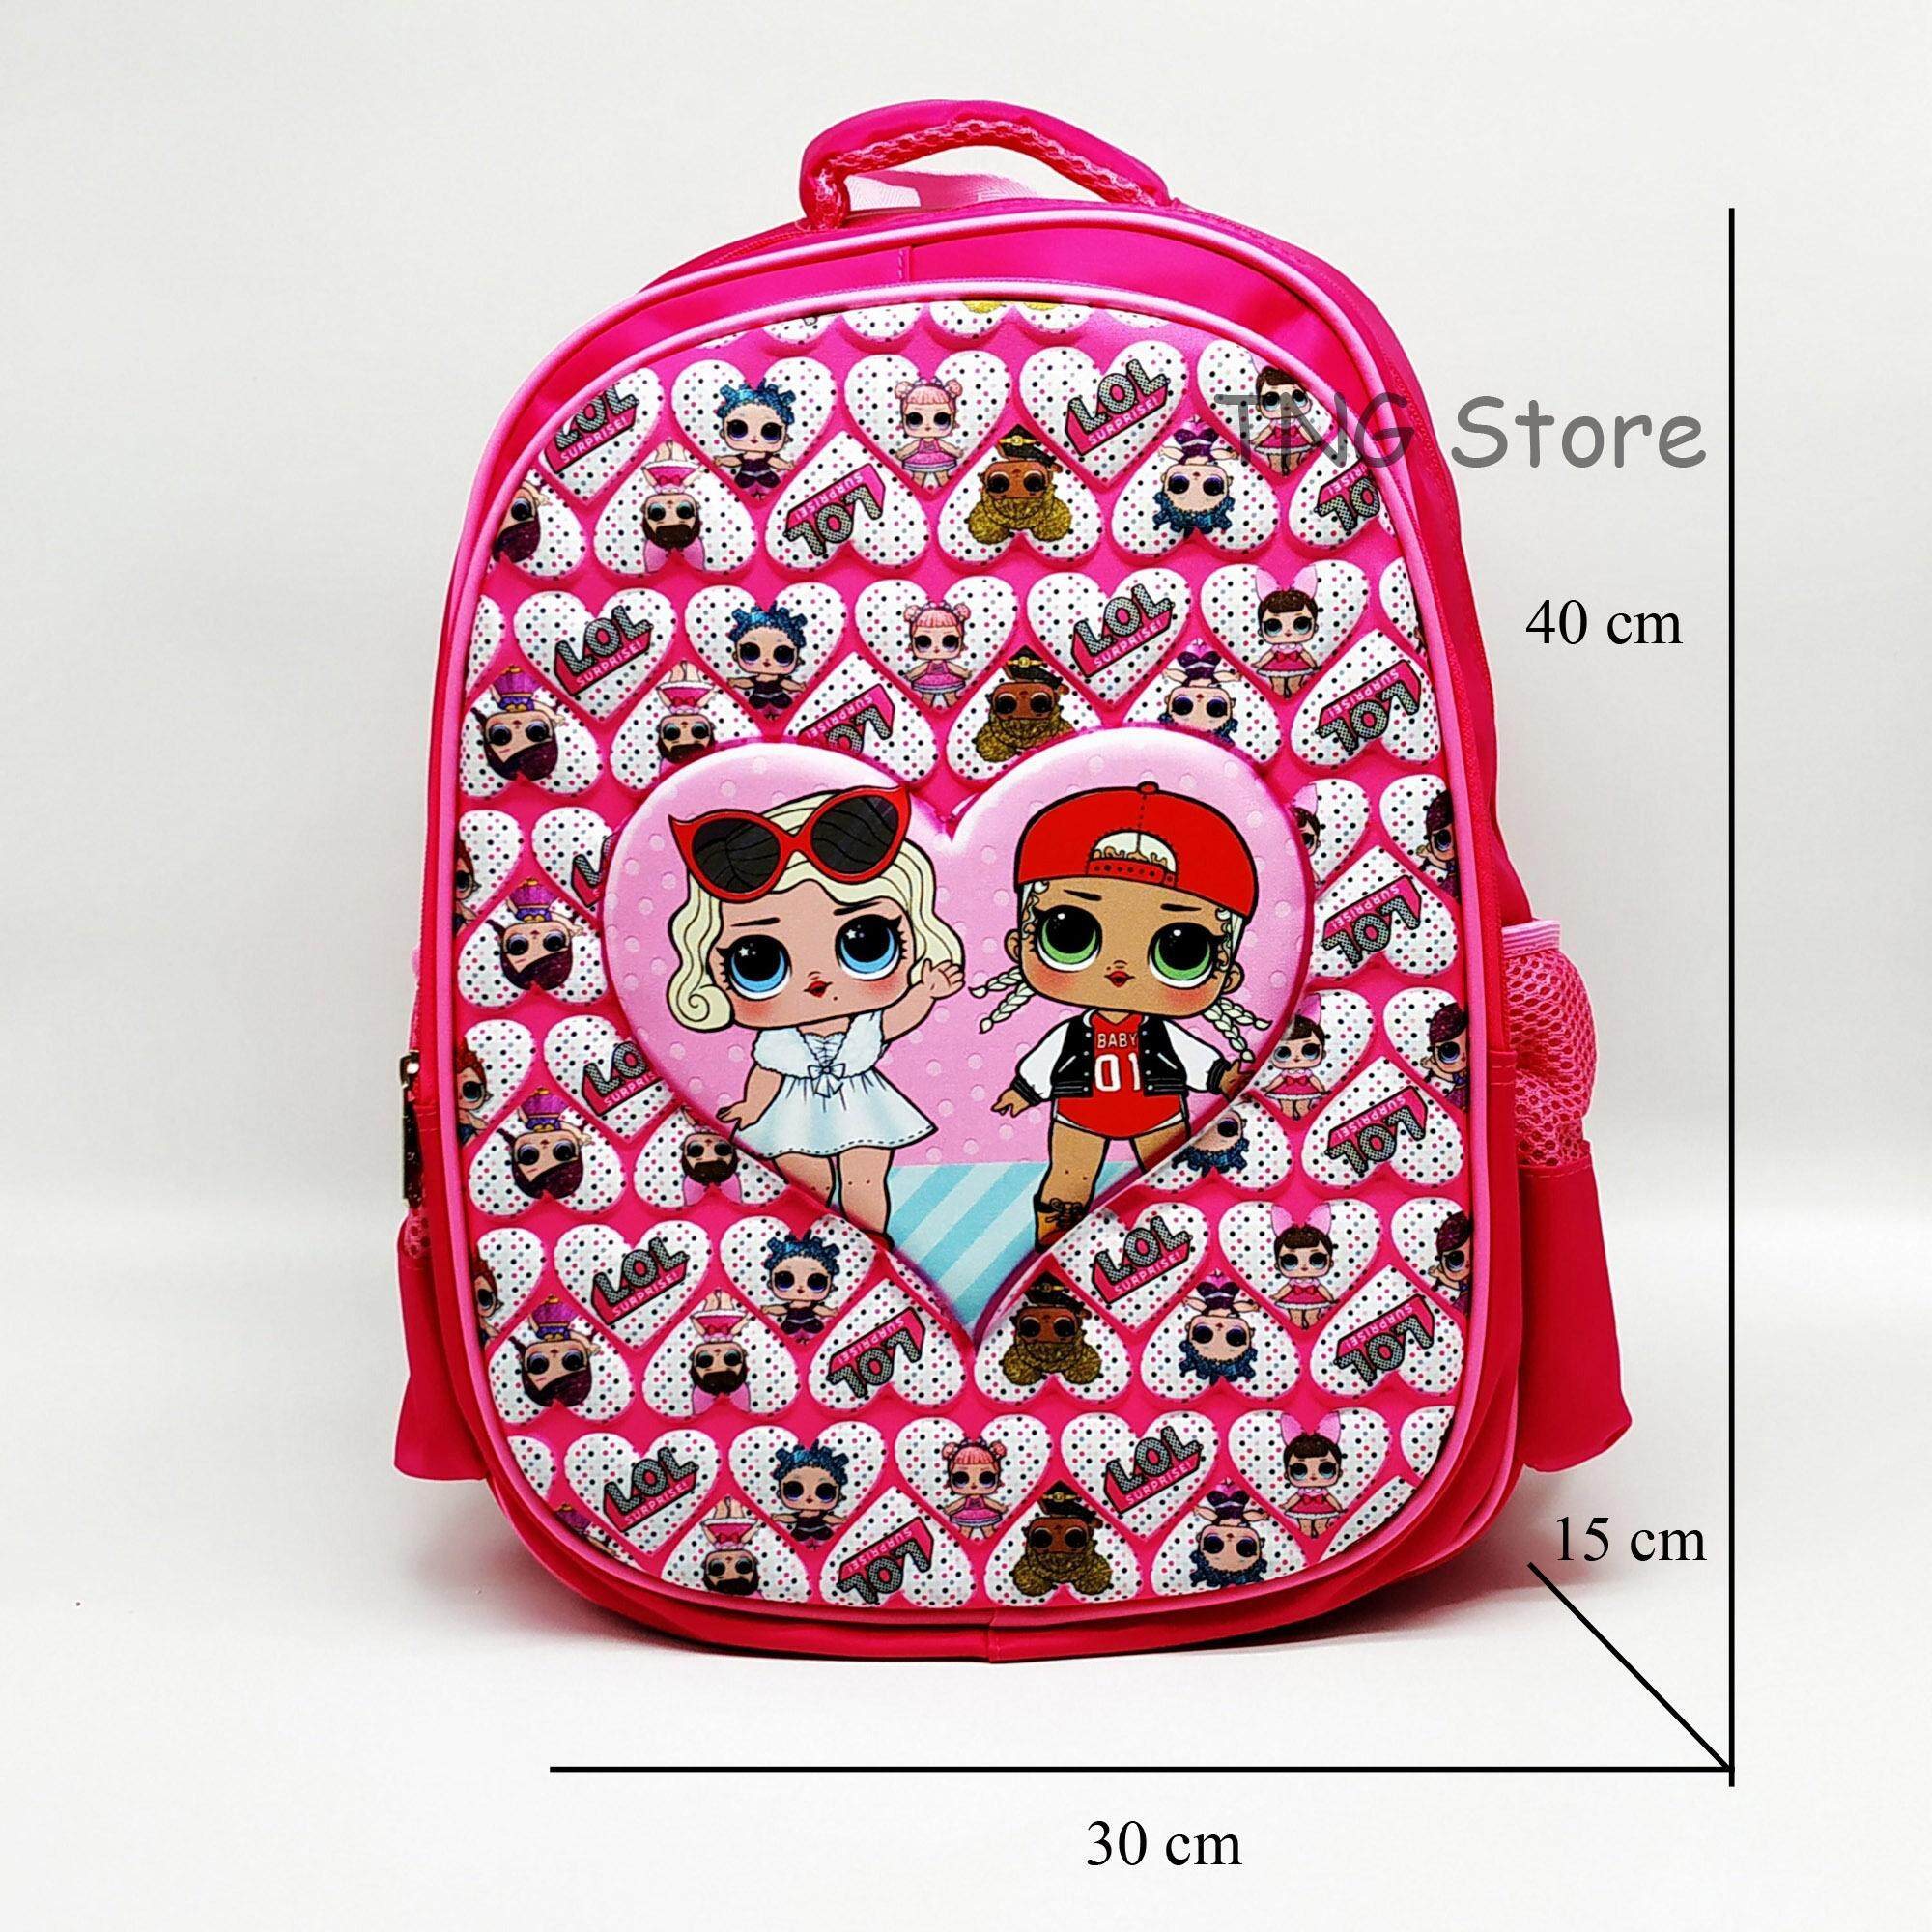 688c62aab0 Tng Store LOL 惊喜 Surprise Backpack School Bag Ready Stock Singapore